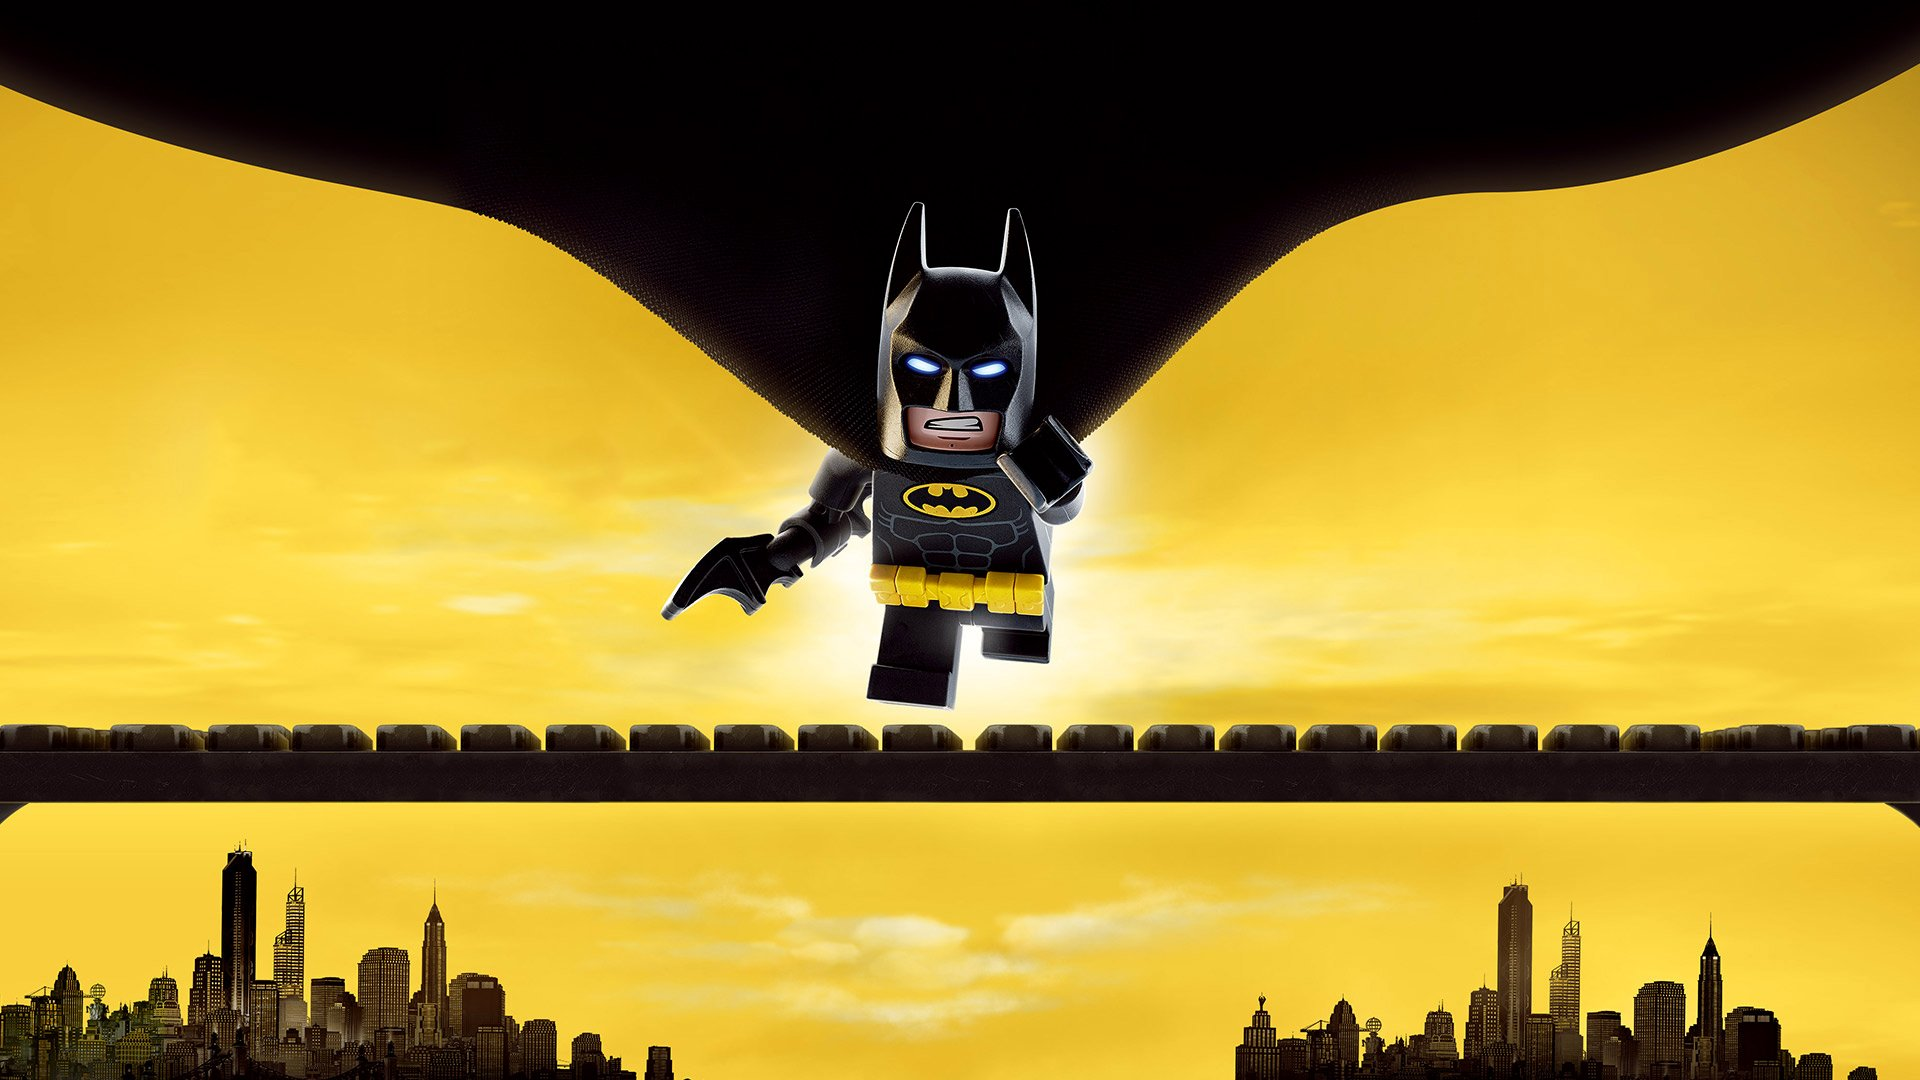 17 The Lego Batman Movie HD Wallpapers Background Images 1920x1080